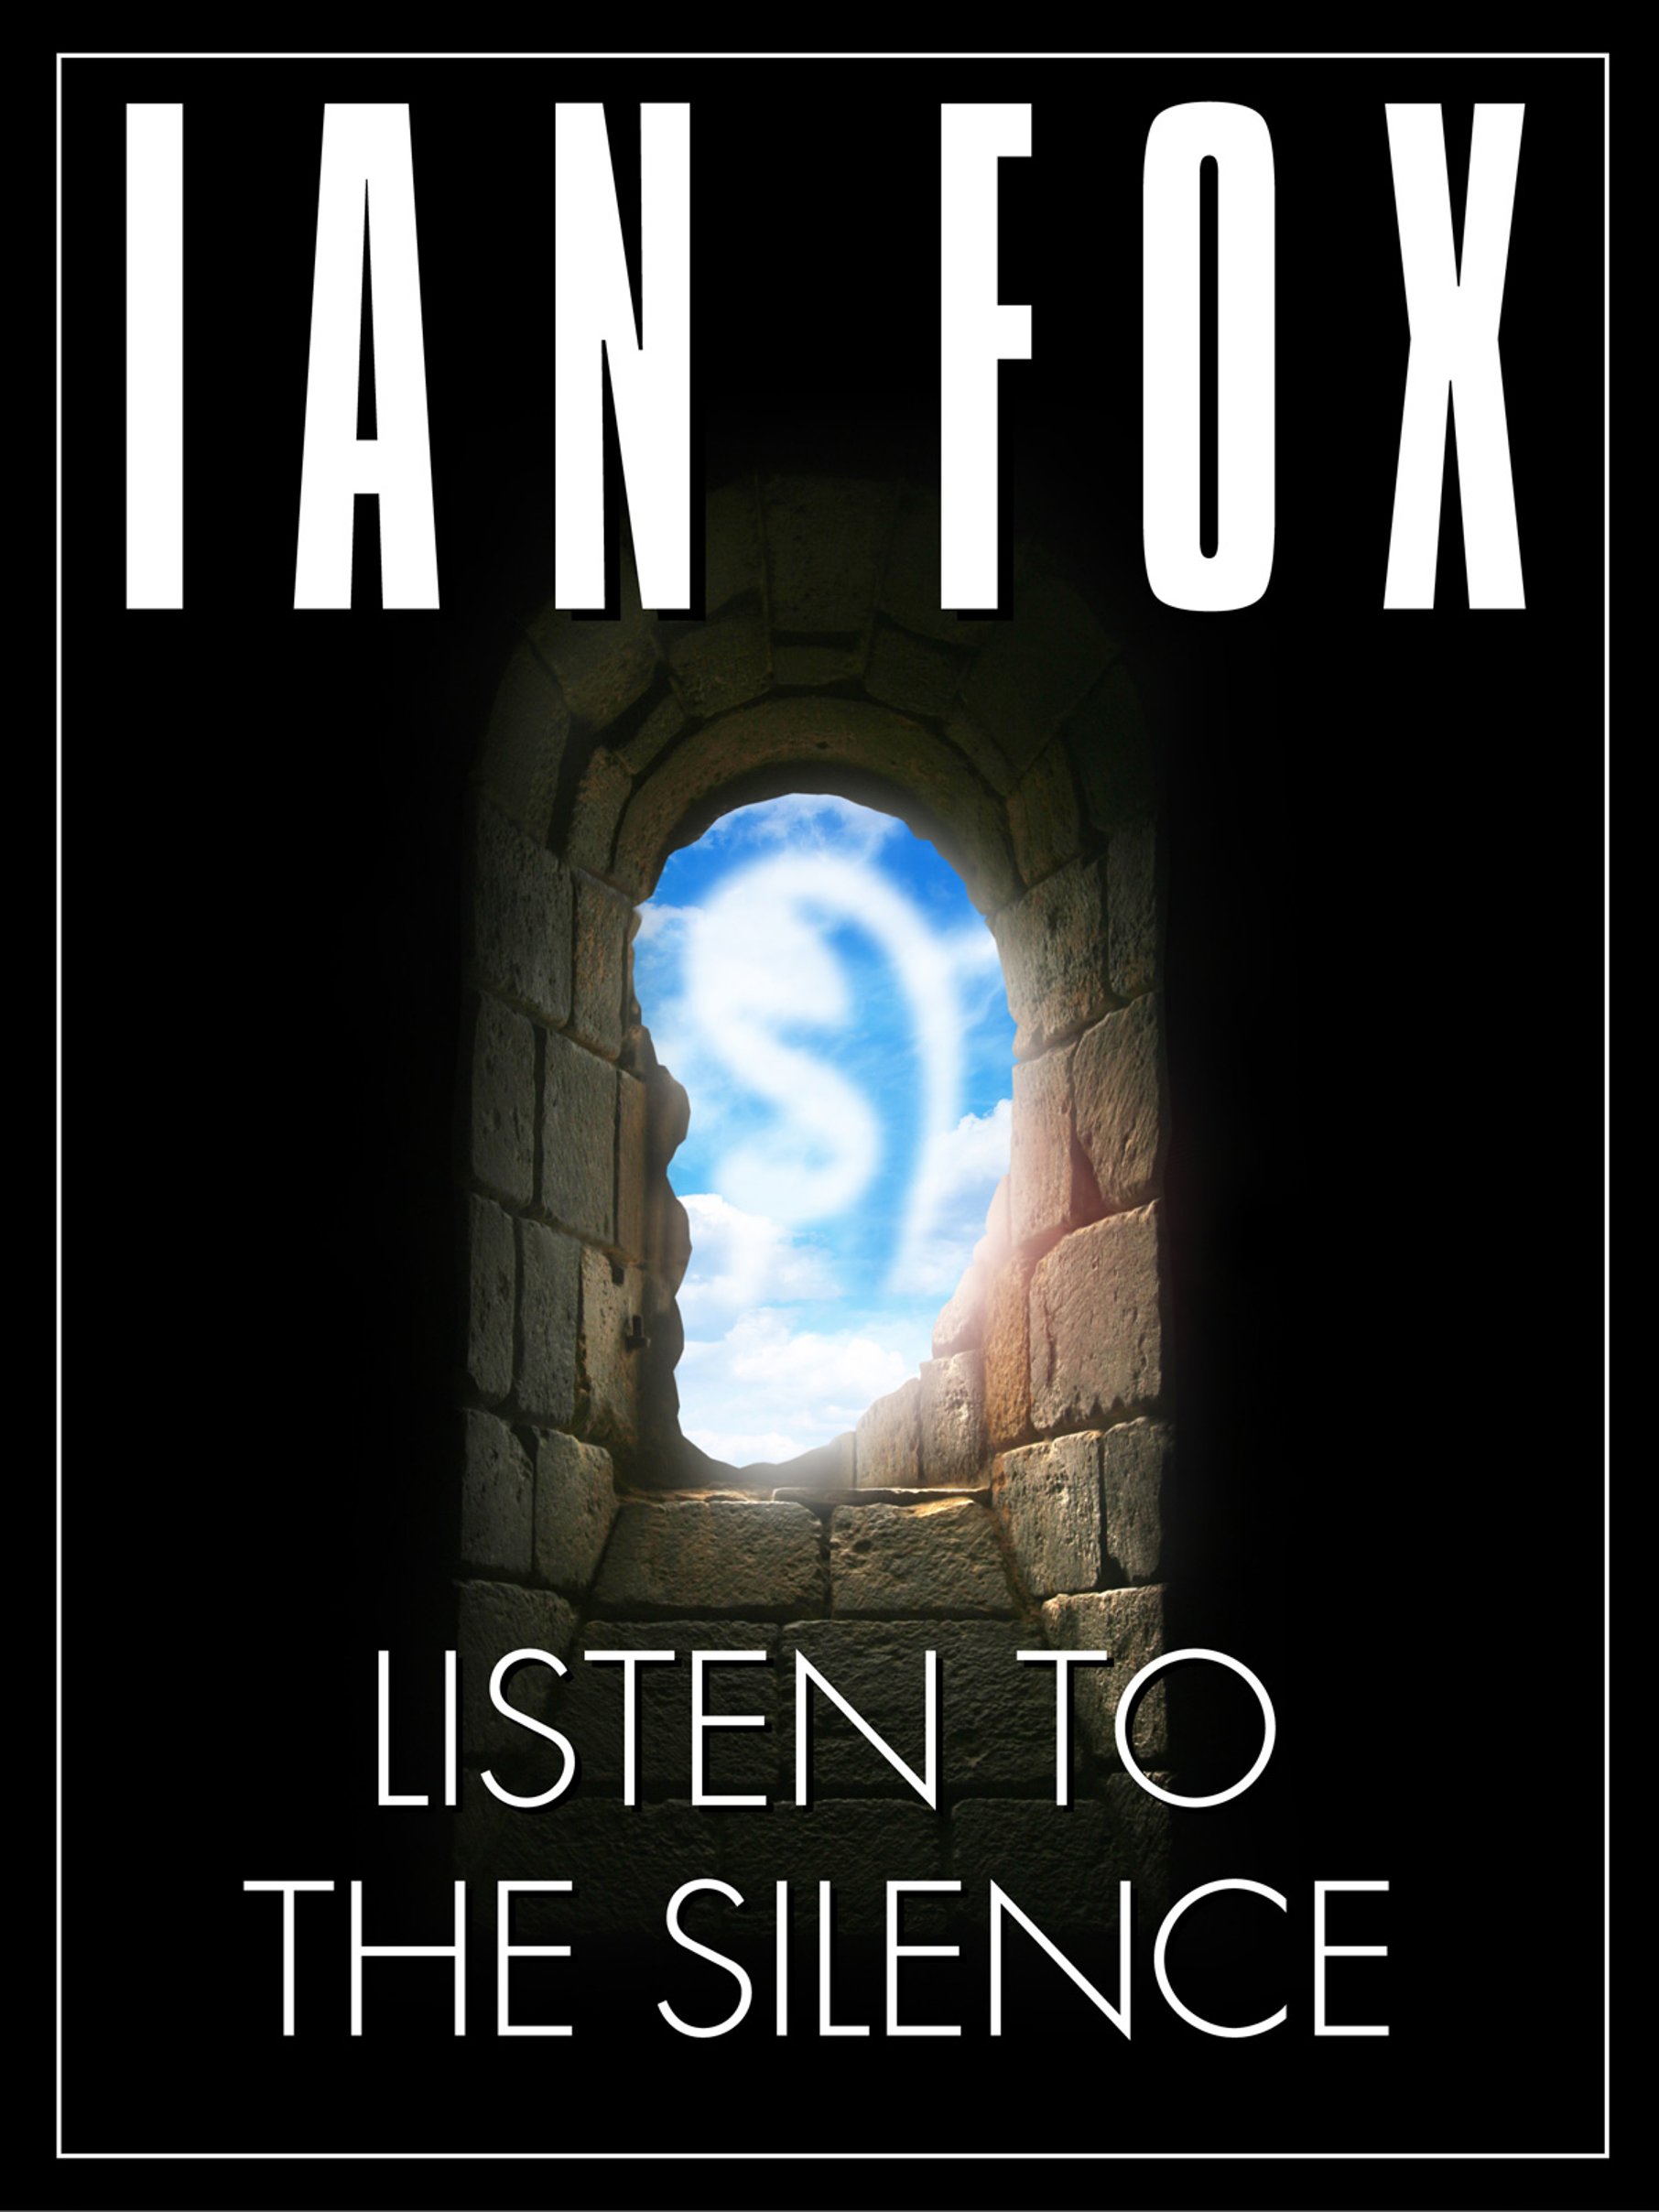 Listen to the Silence - a 10 minute short story